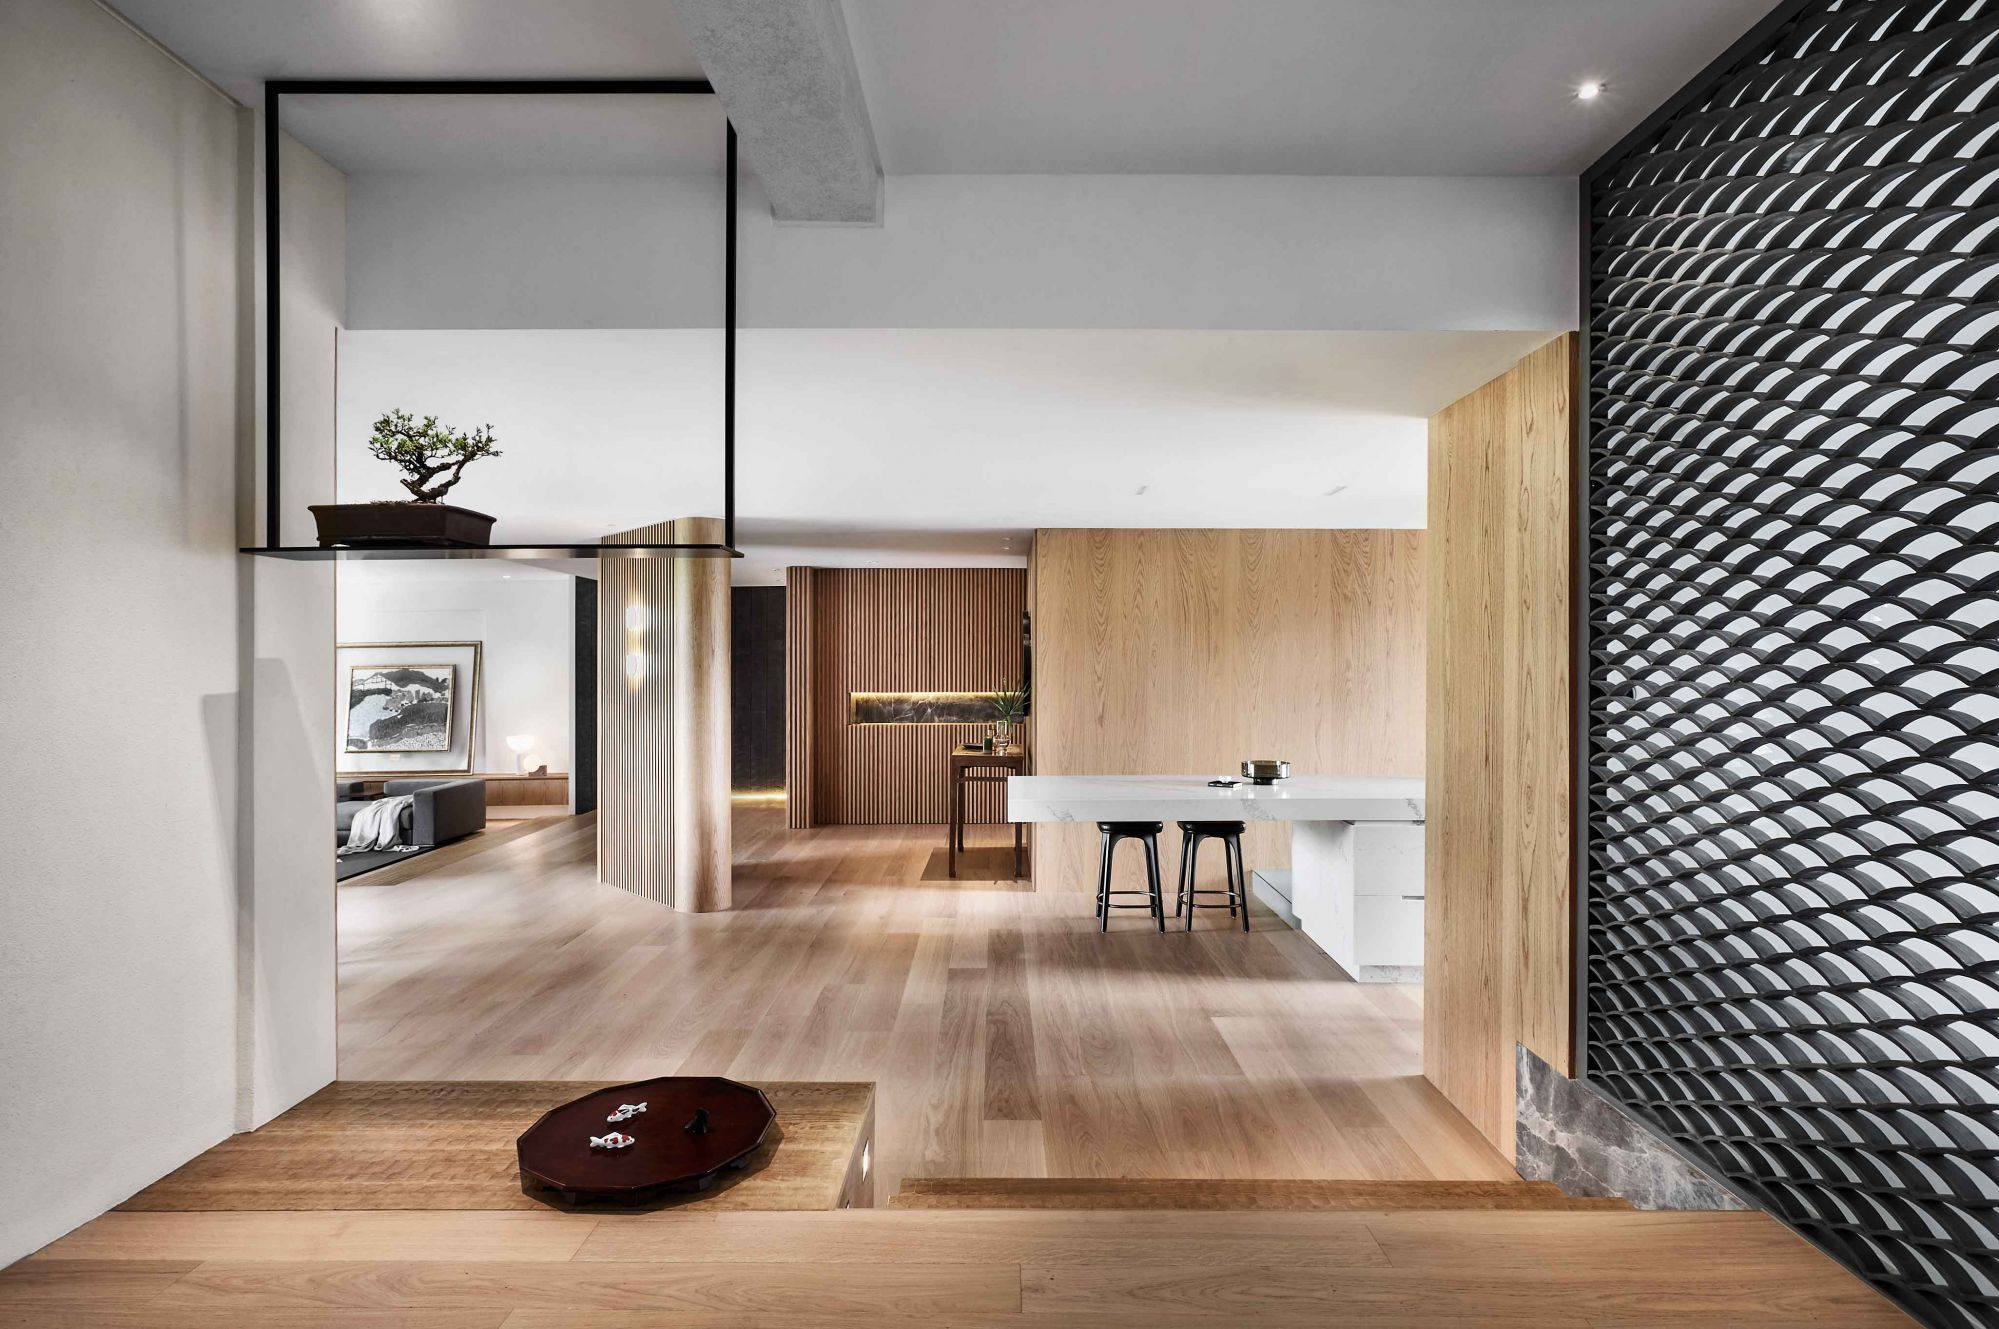 The Ryokan Modern, a home designed by Upstairs_